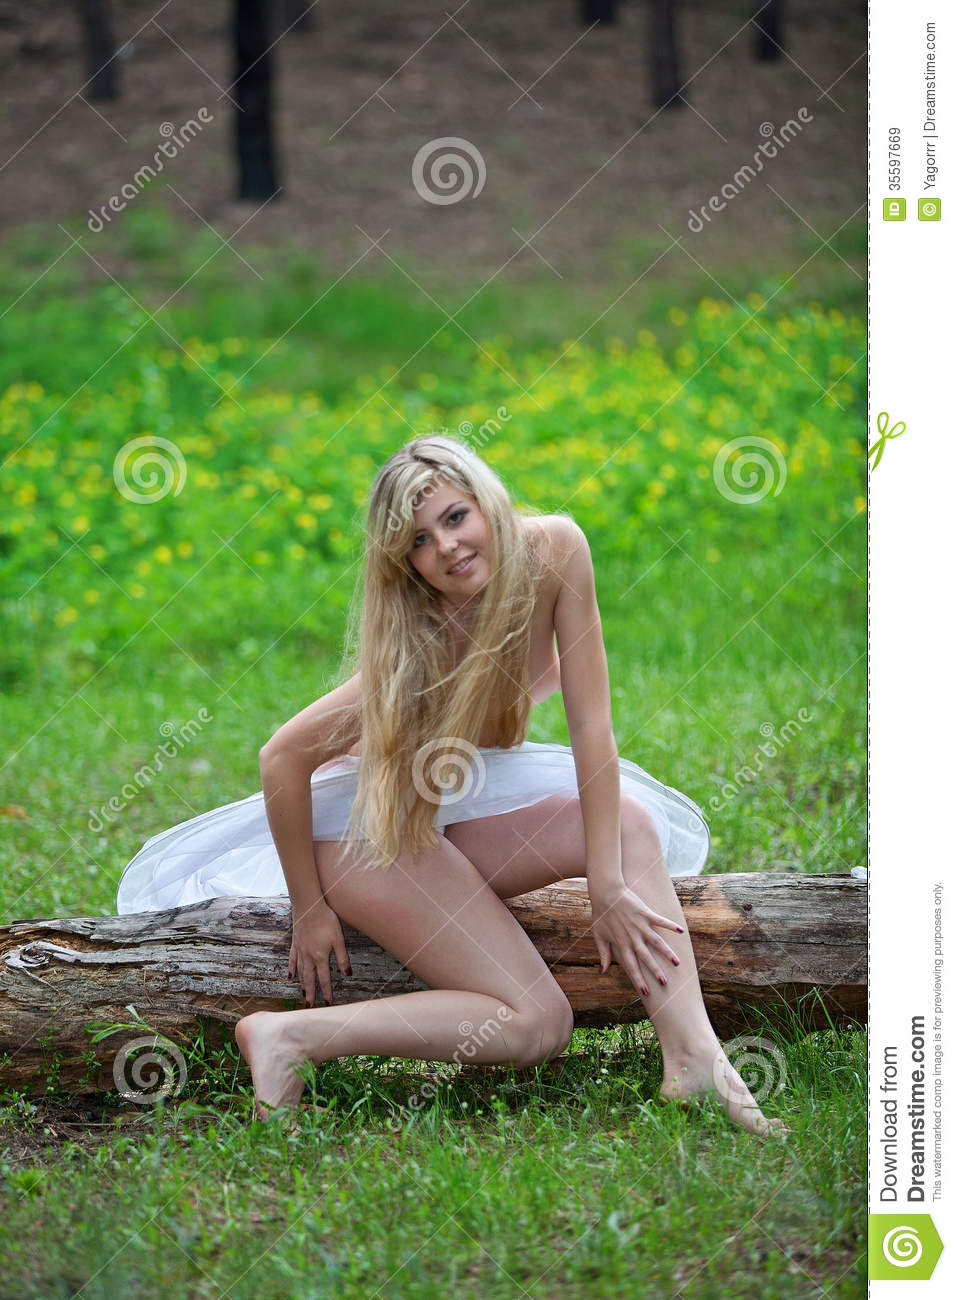 beautiful blonde woman topless sitting on a log in the forest in a